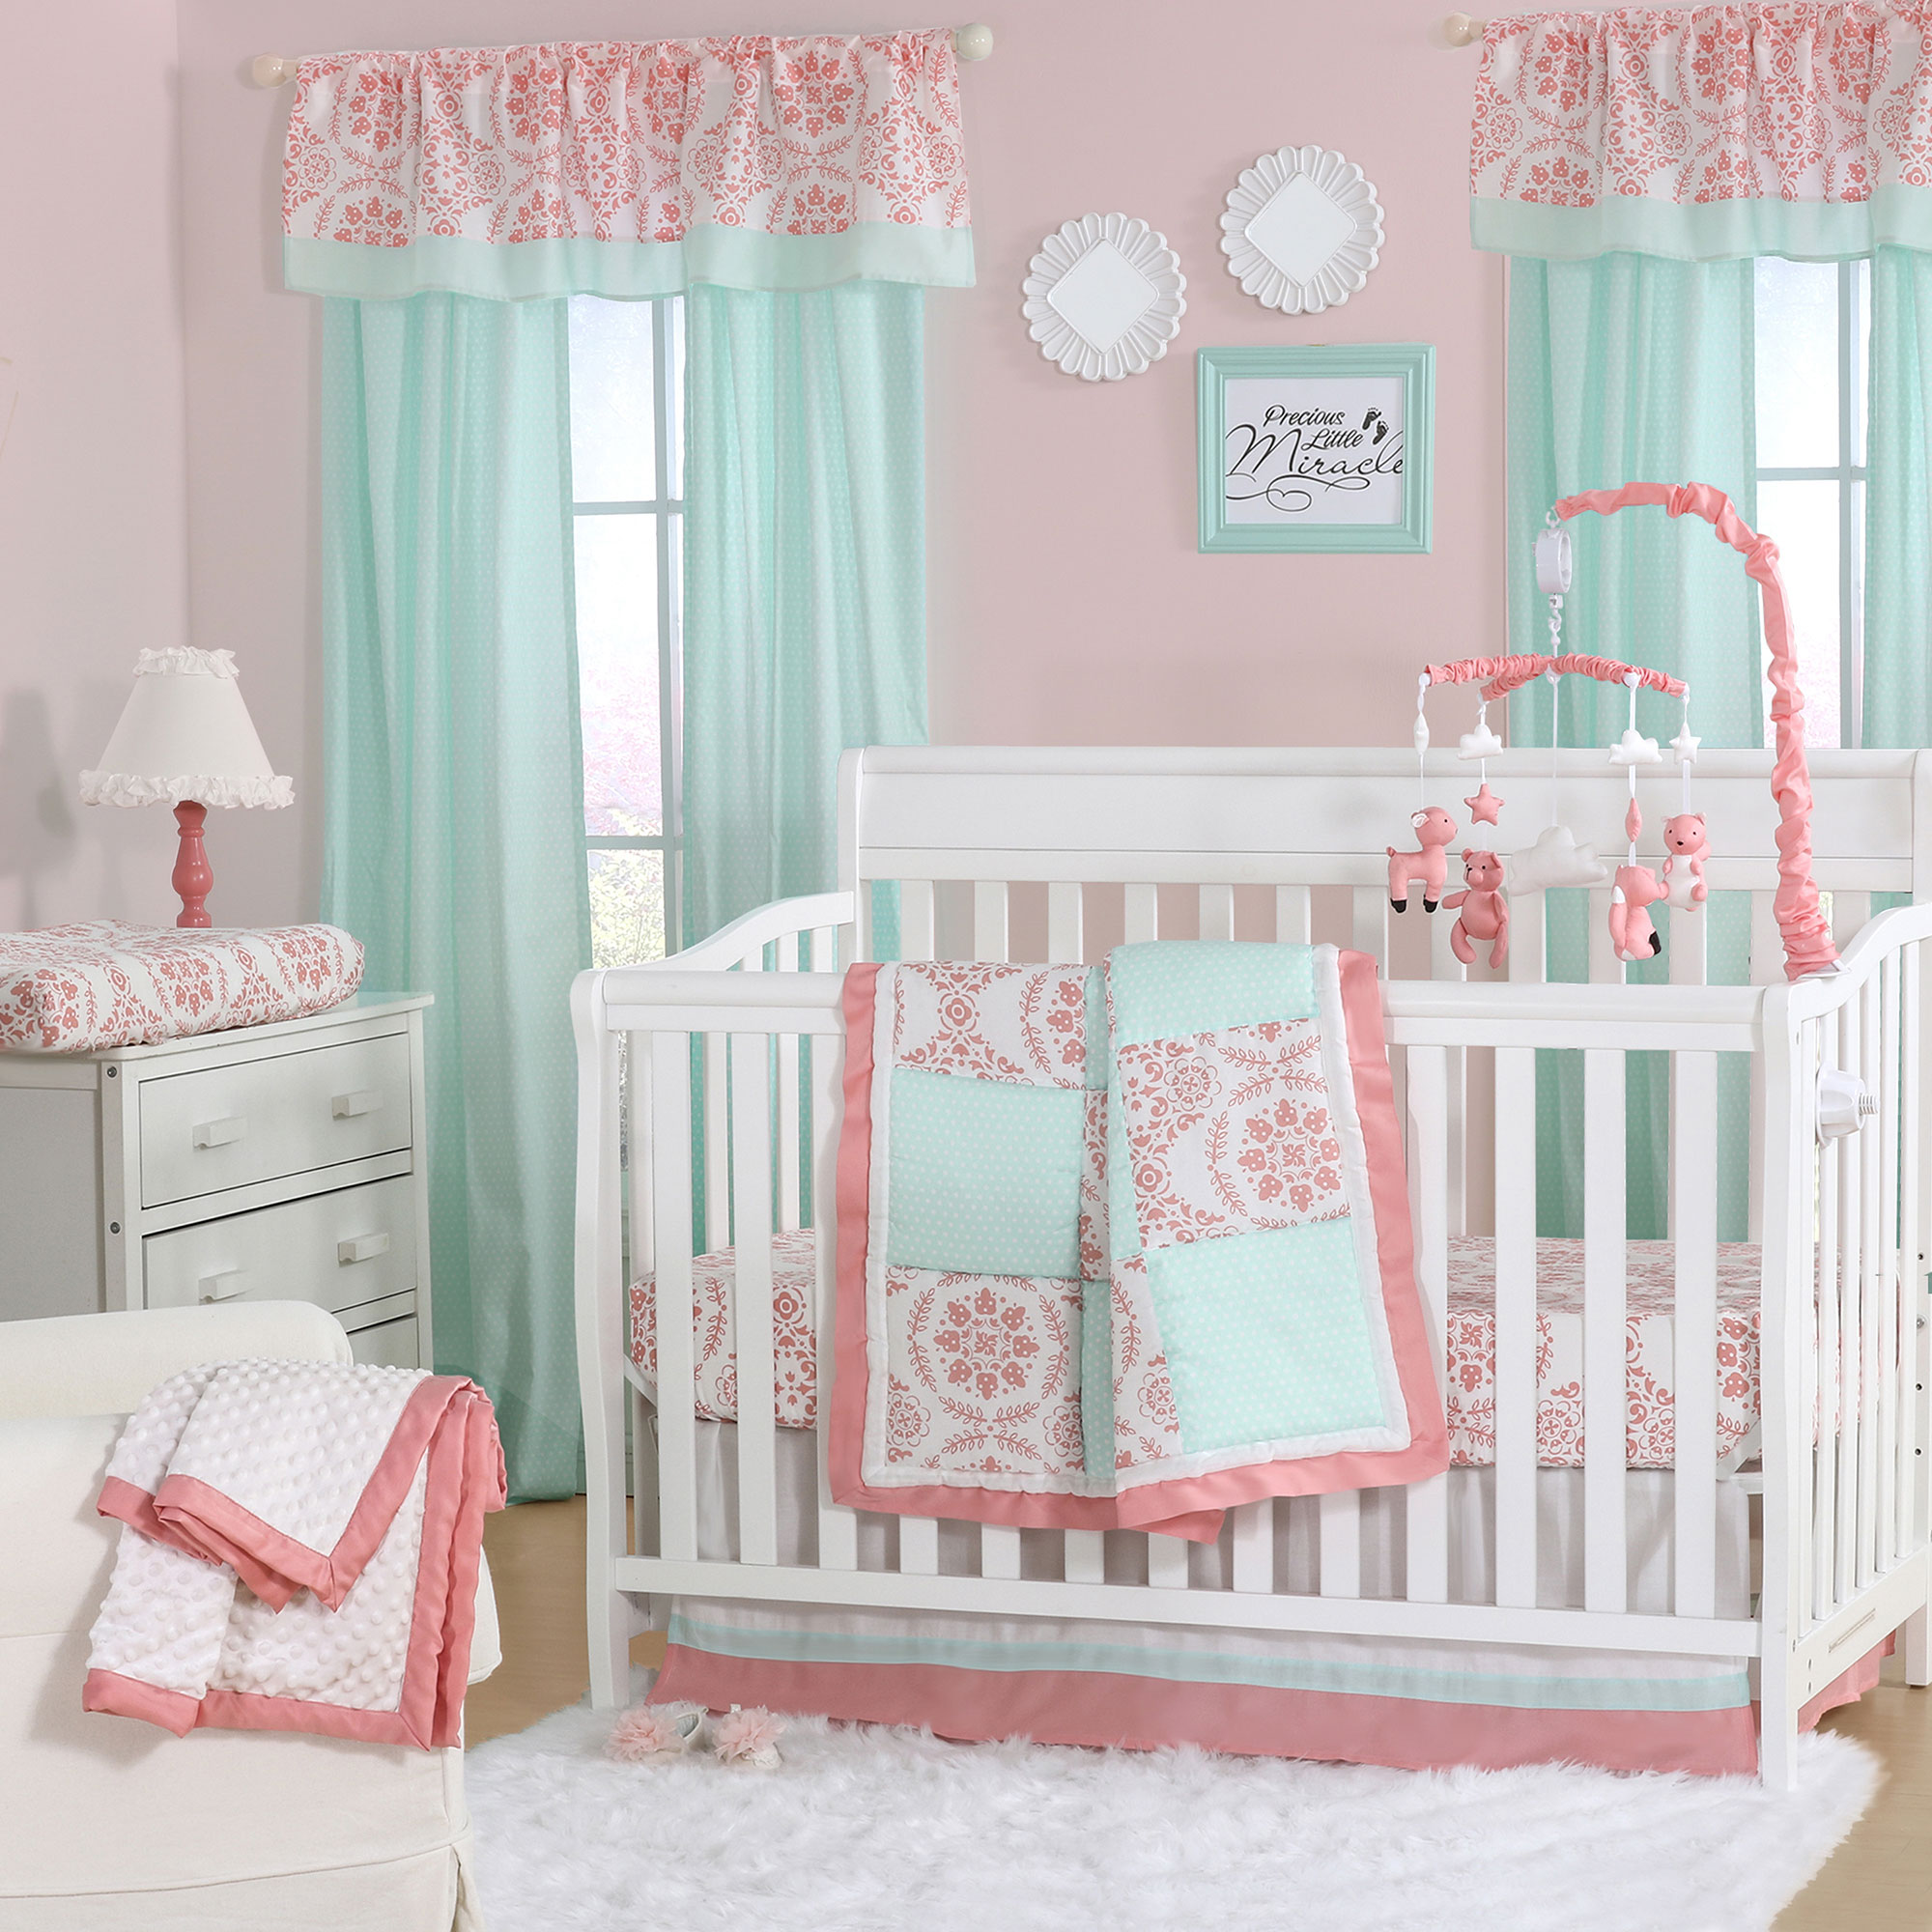 house baby bedding simple sets design nursery throughout latest trends purple girl bed ideas